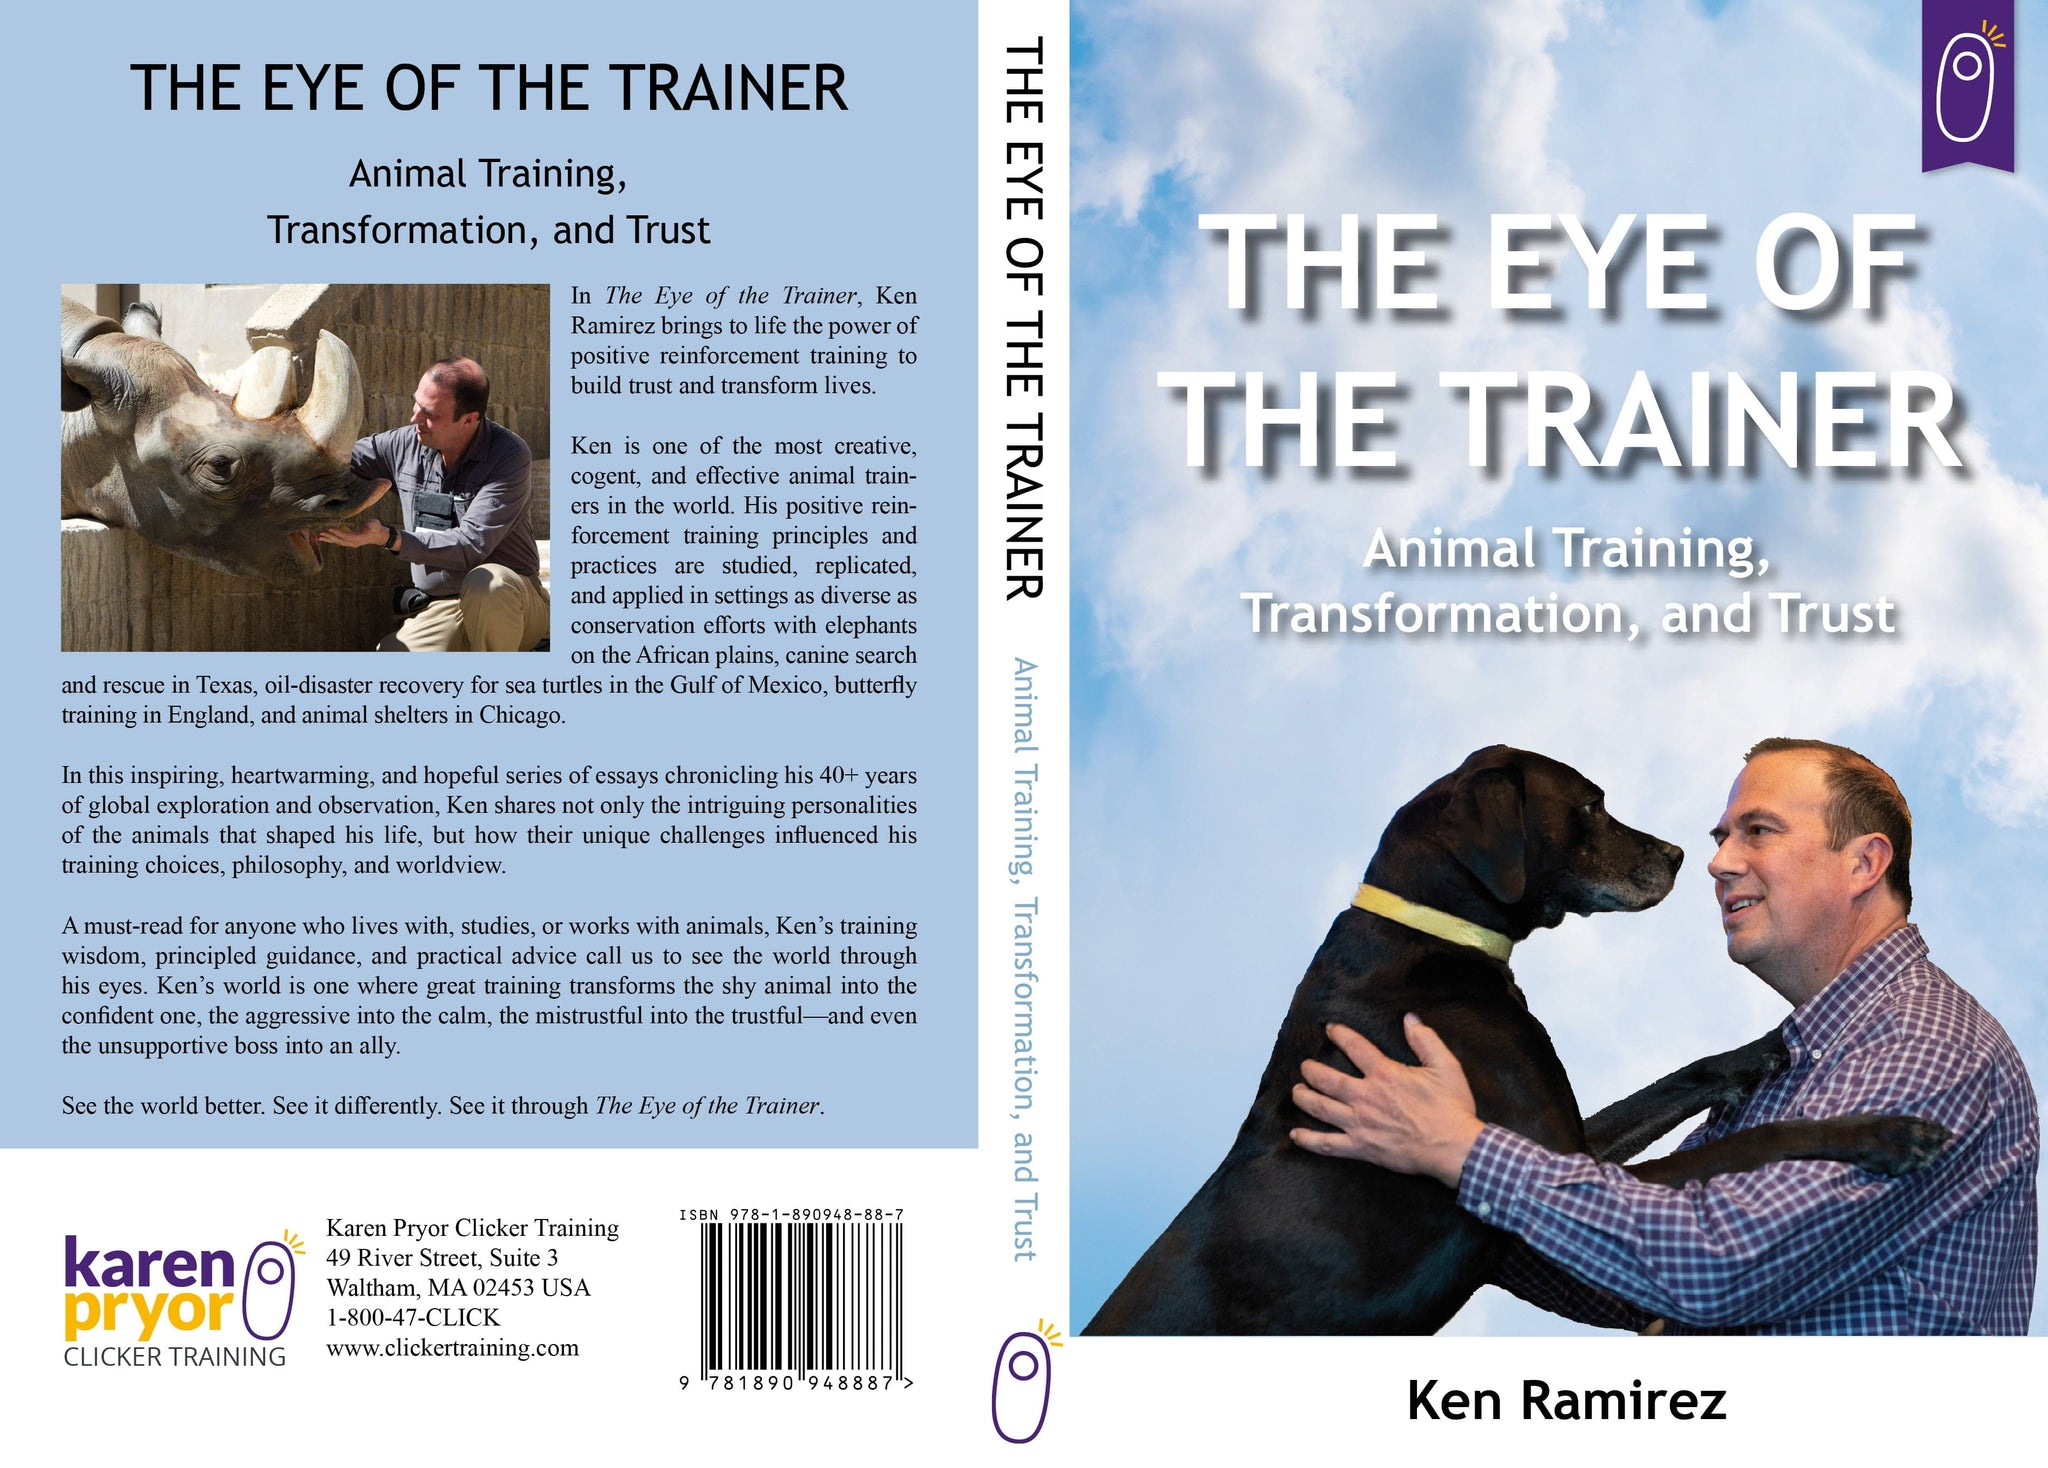 The Eye of the Trainer: Animal Training, Transformation, and Trust